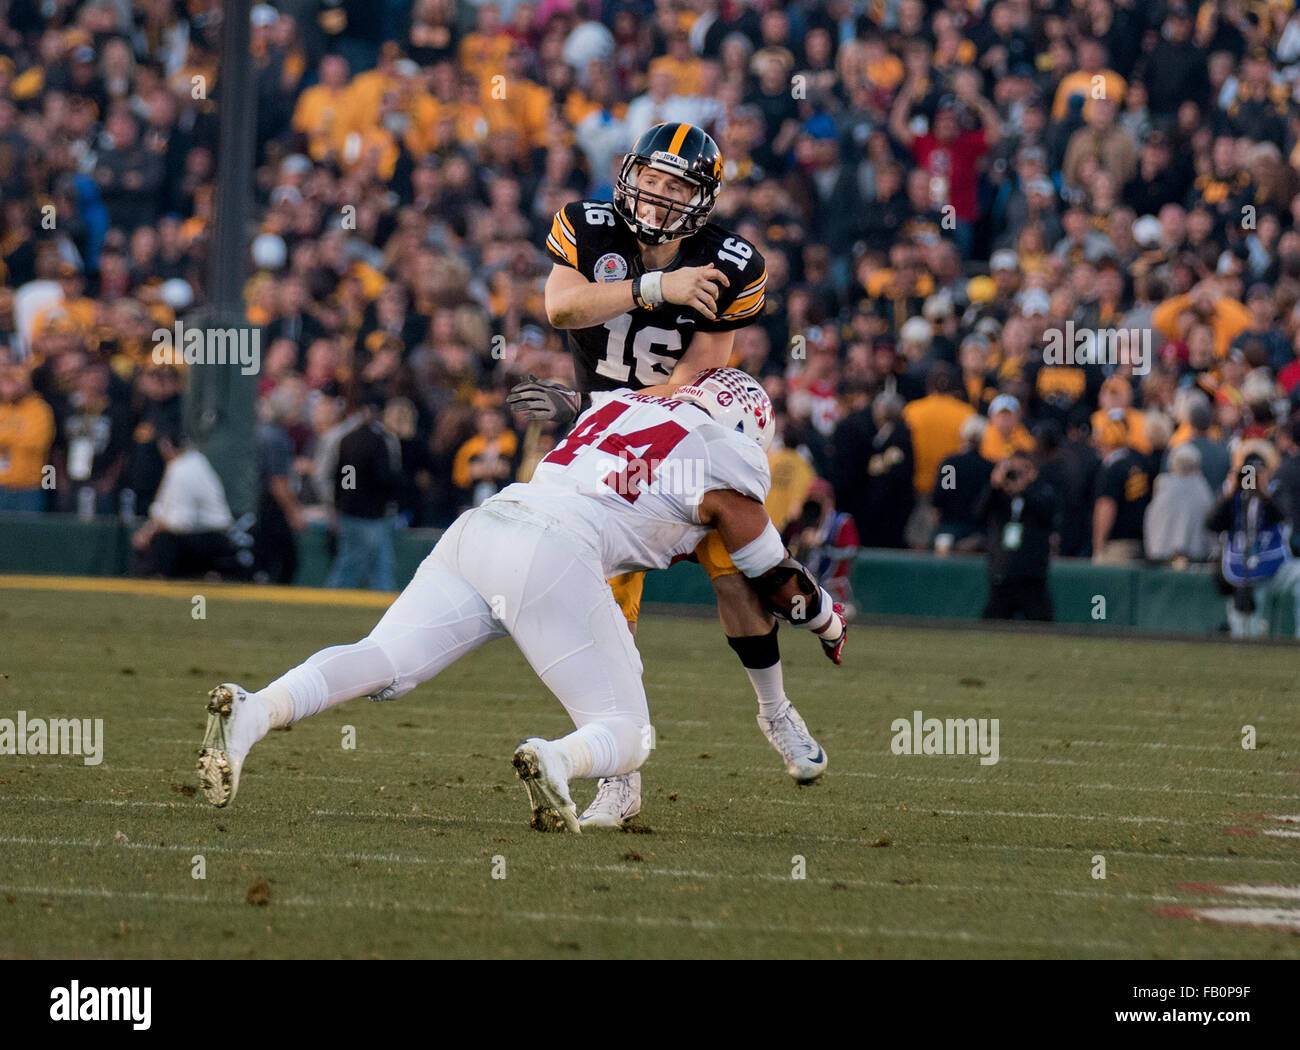 January 1, 2016 Pasadena, CA...Iowa Hawkeyes quarterback (16) C.J. Beathard makes a pass before getting hit by Stanford - Stock Image